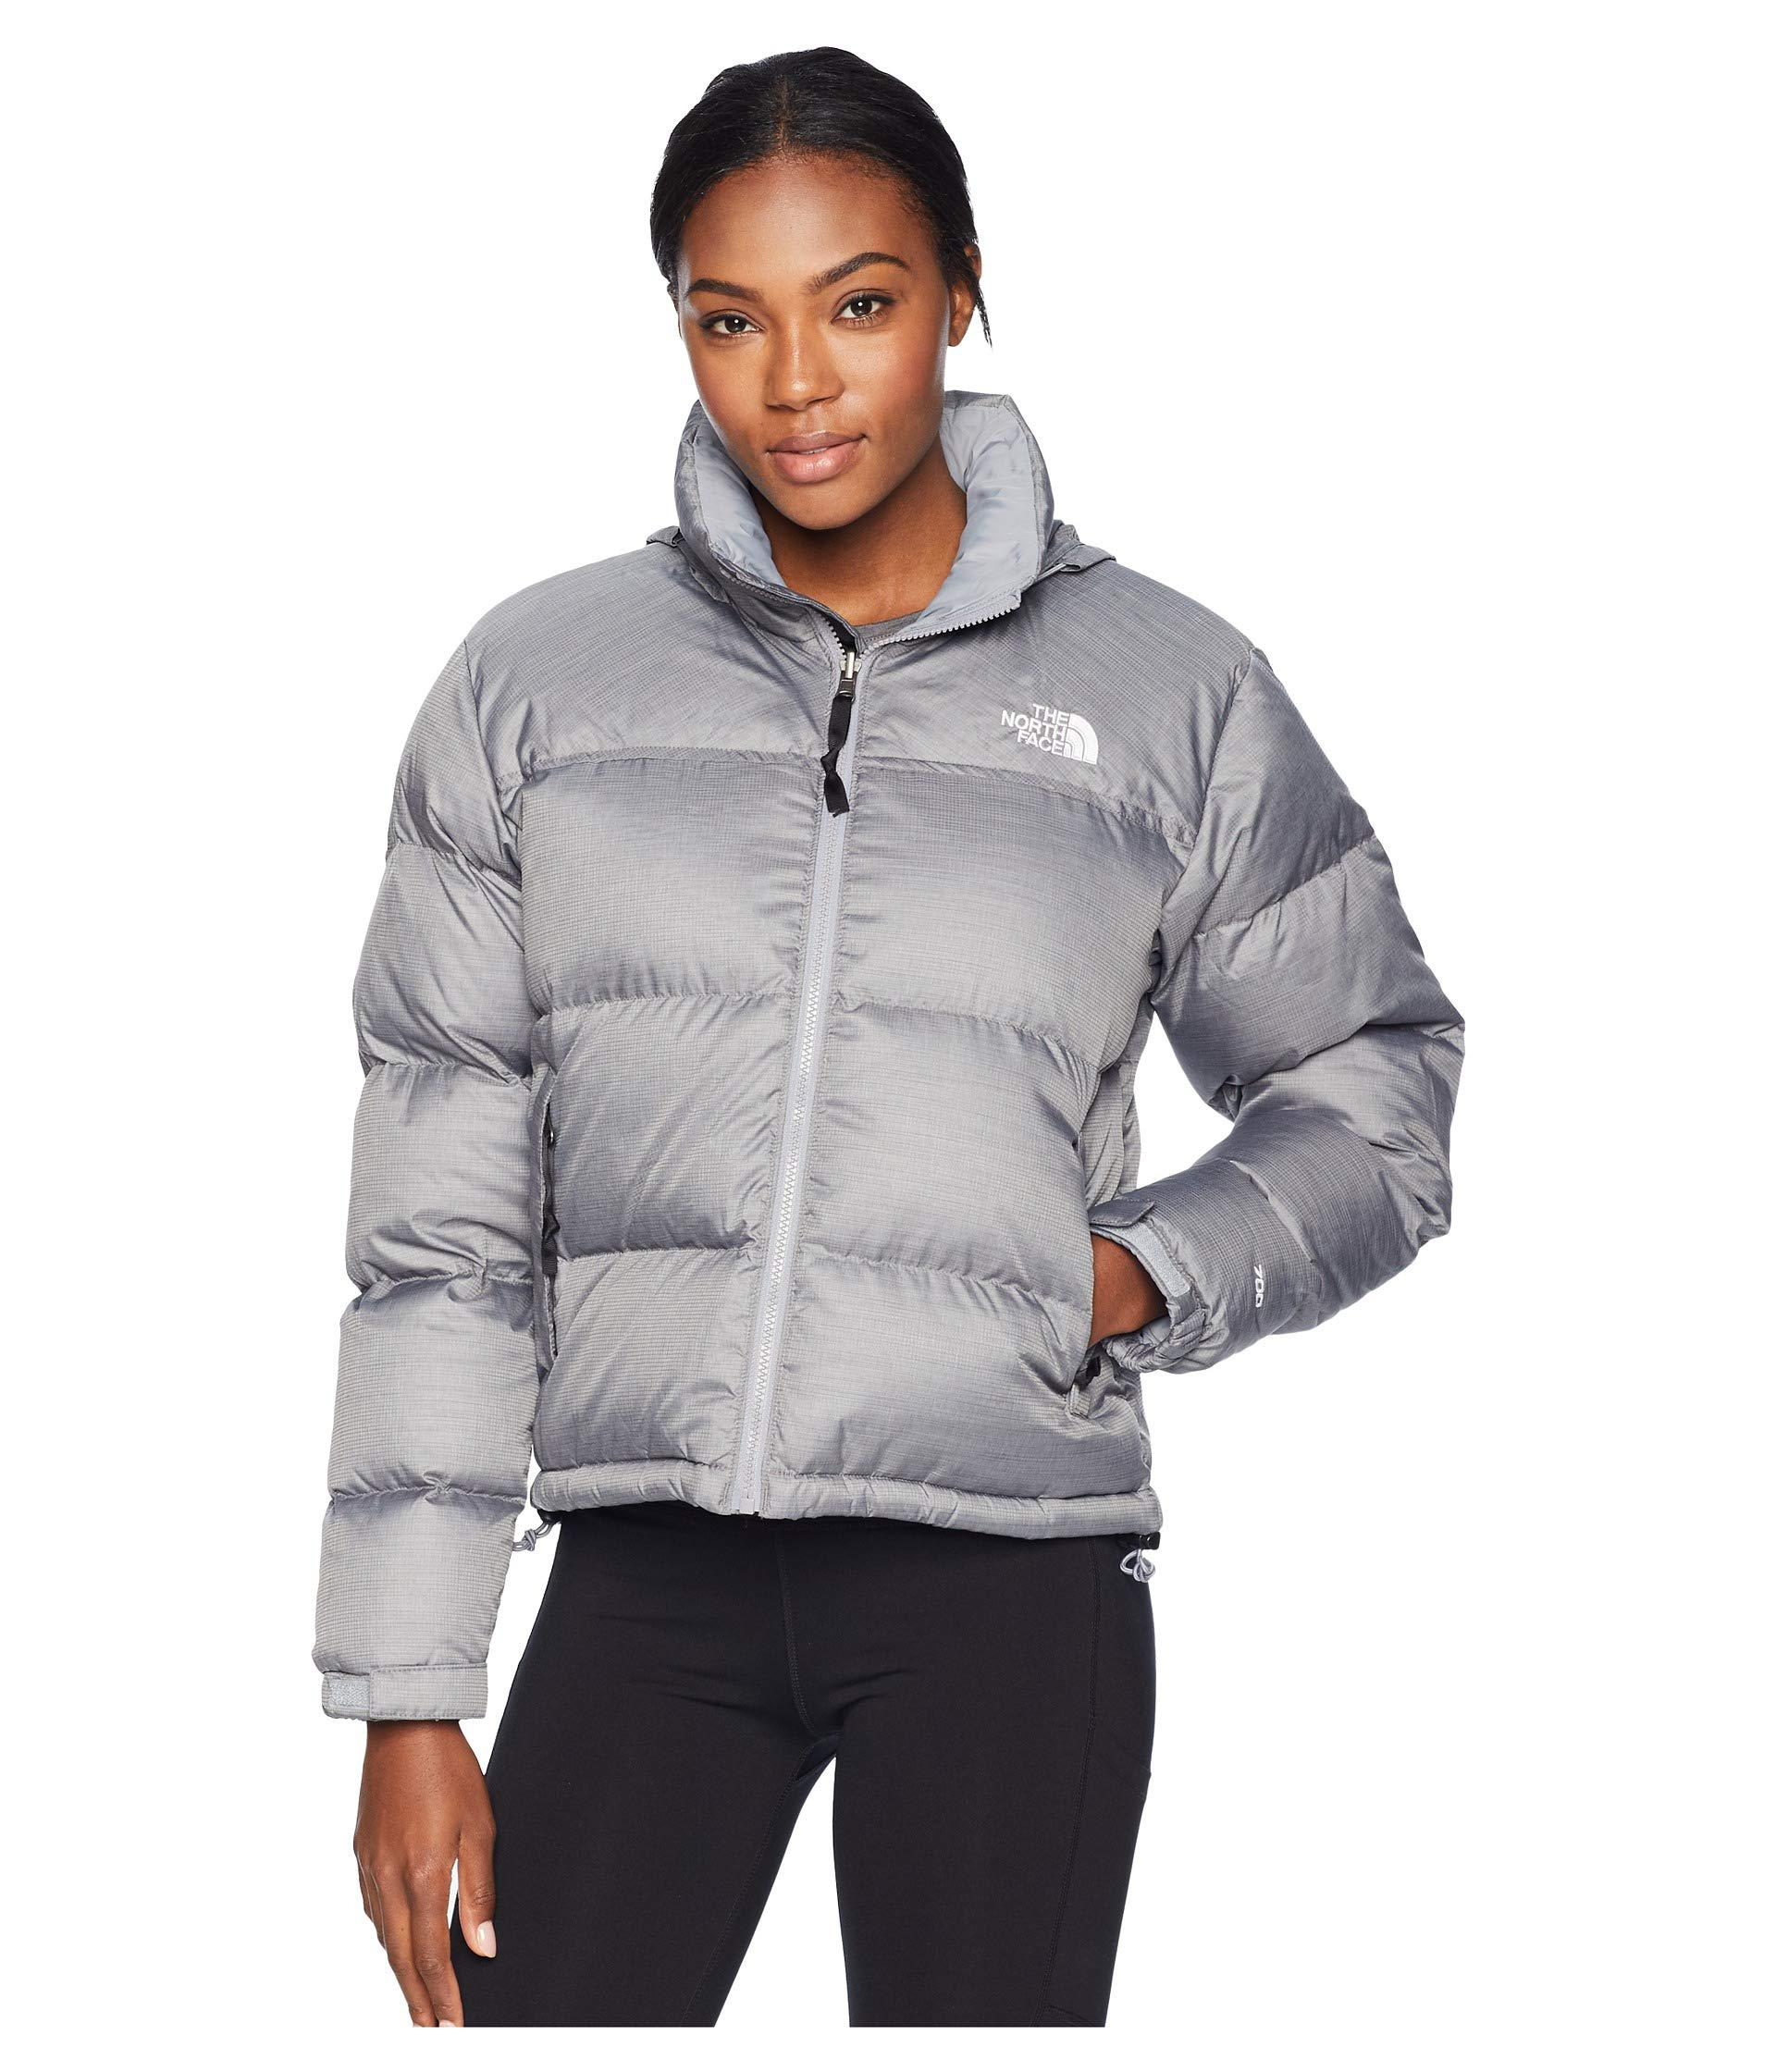 Lyst - The North Face 1996 Retro Nuptse Jacket (tnf White) Women s ... 70081f3dd